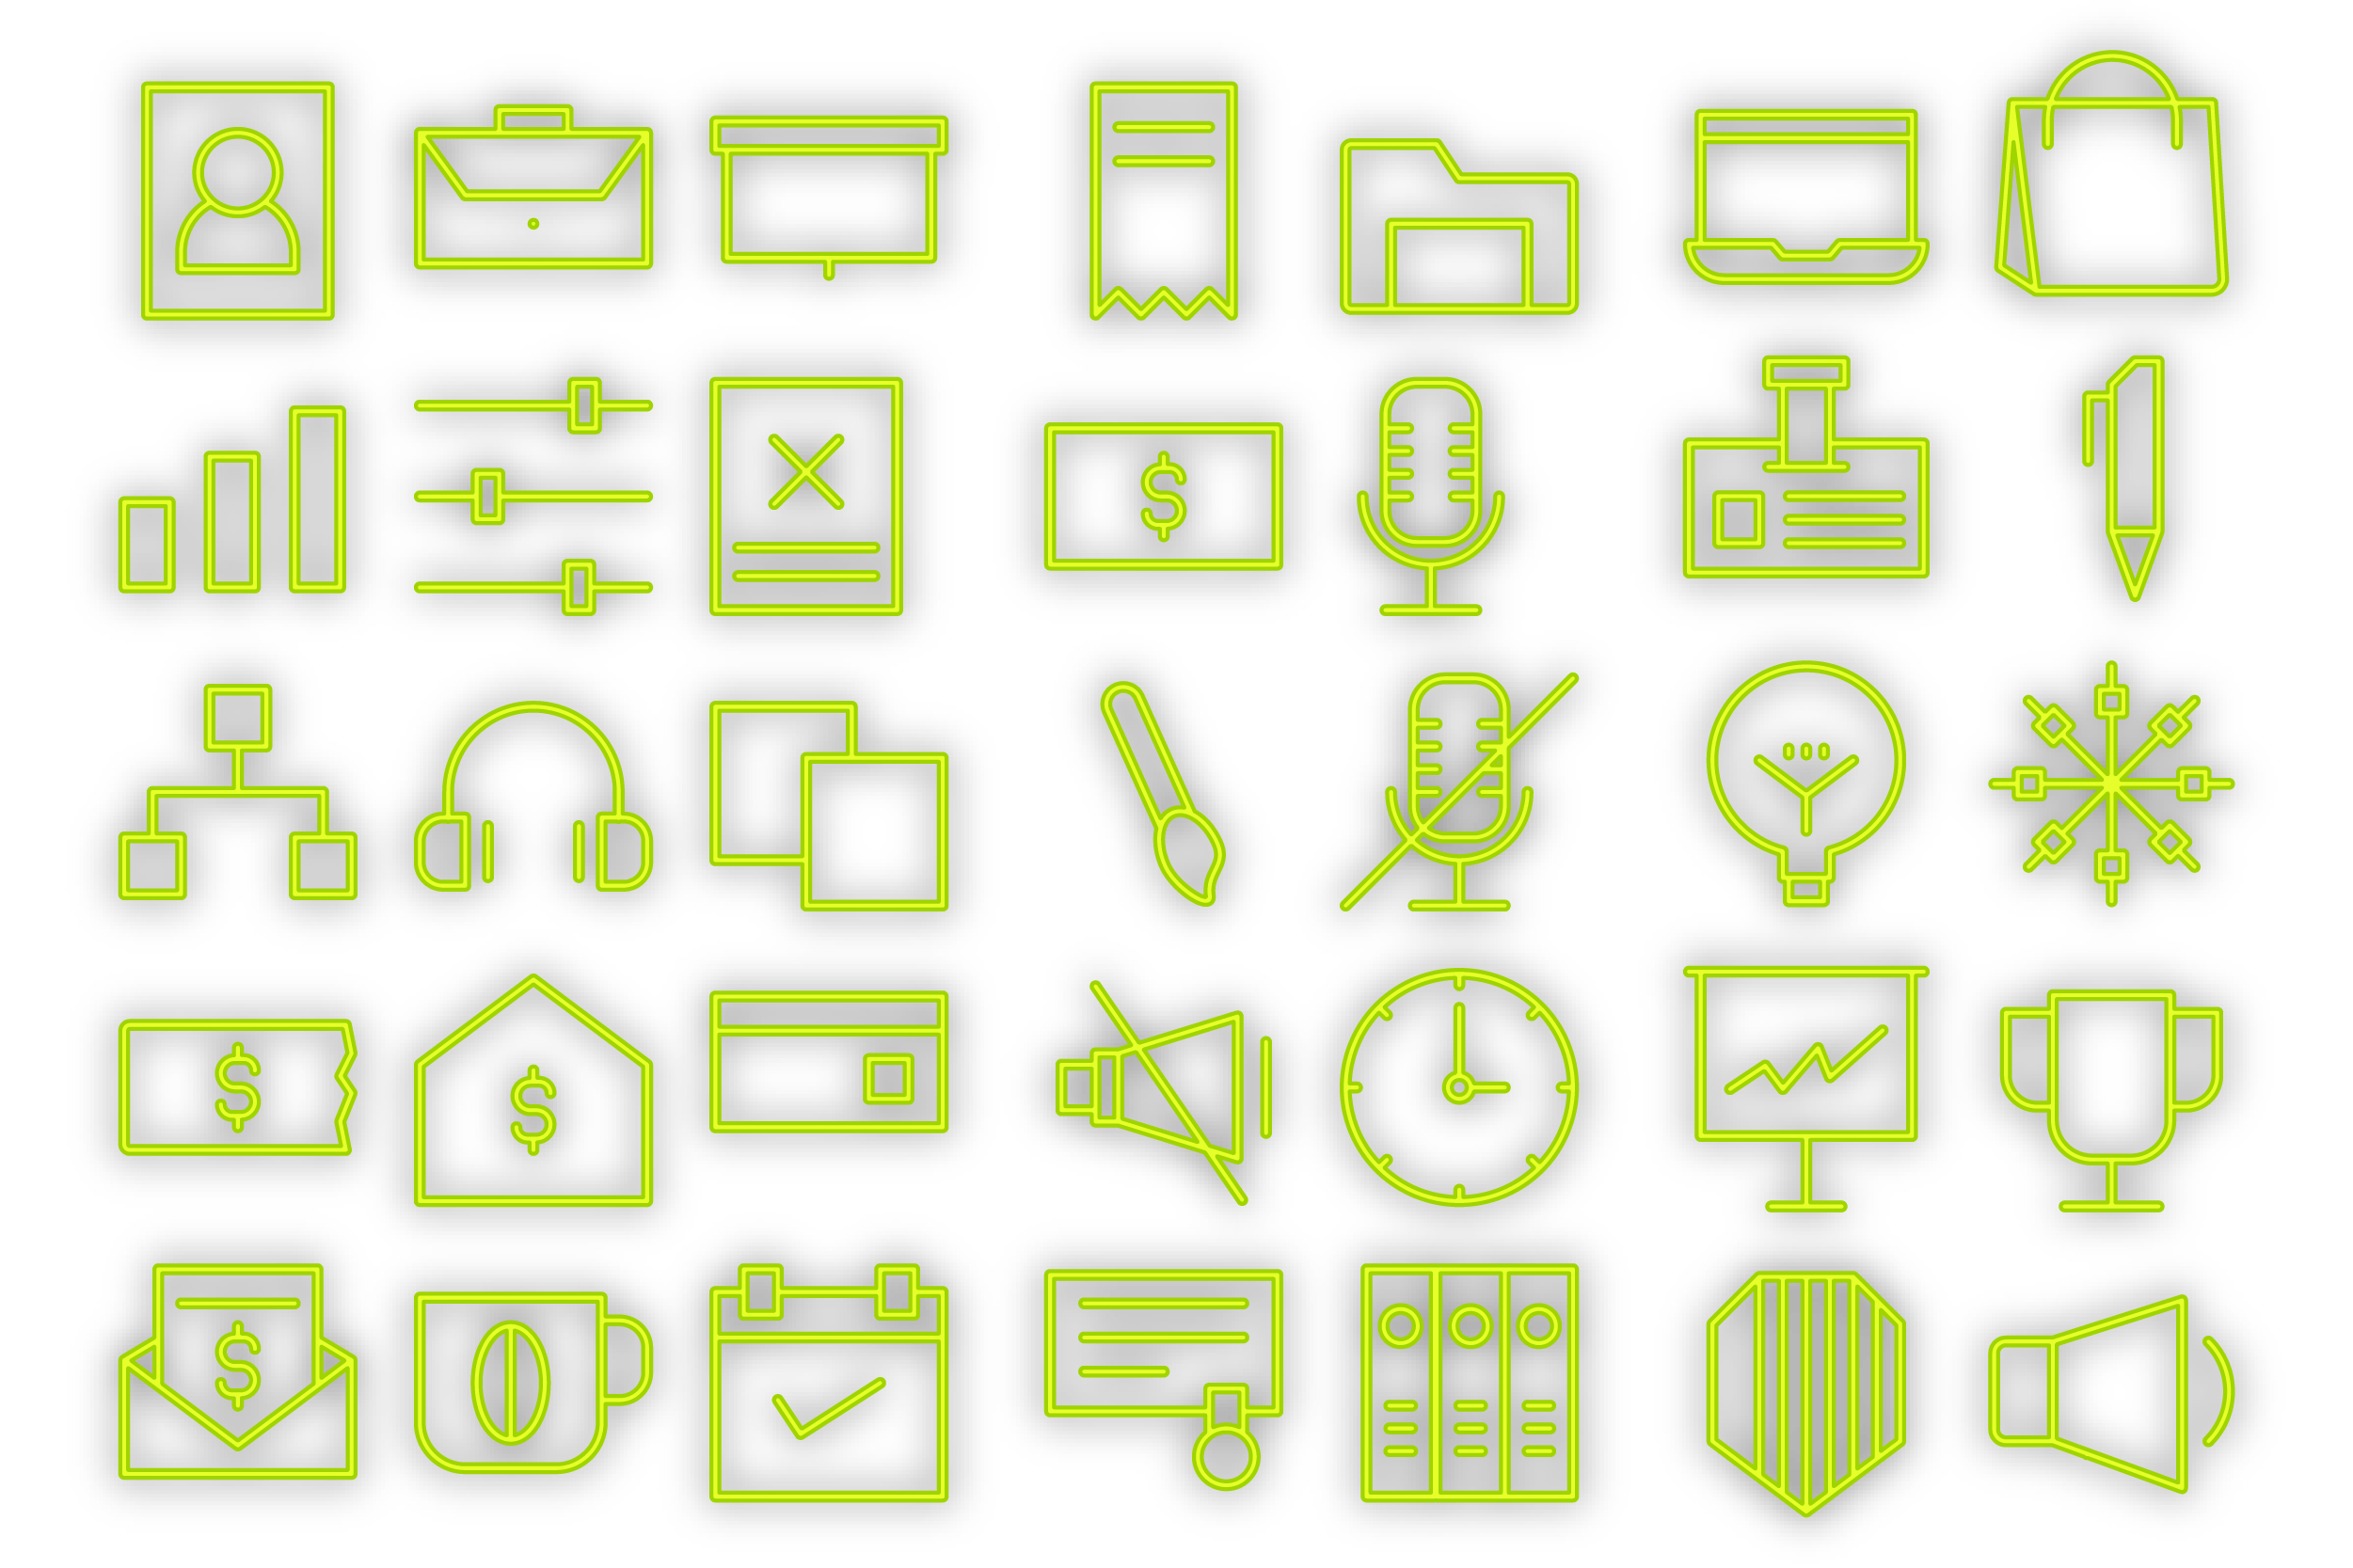 Download Free Business Icons It Graphic By Designvector10 Creative Fabrica for Cricut Explore, Silhouette and other cutting machines.